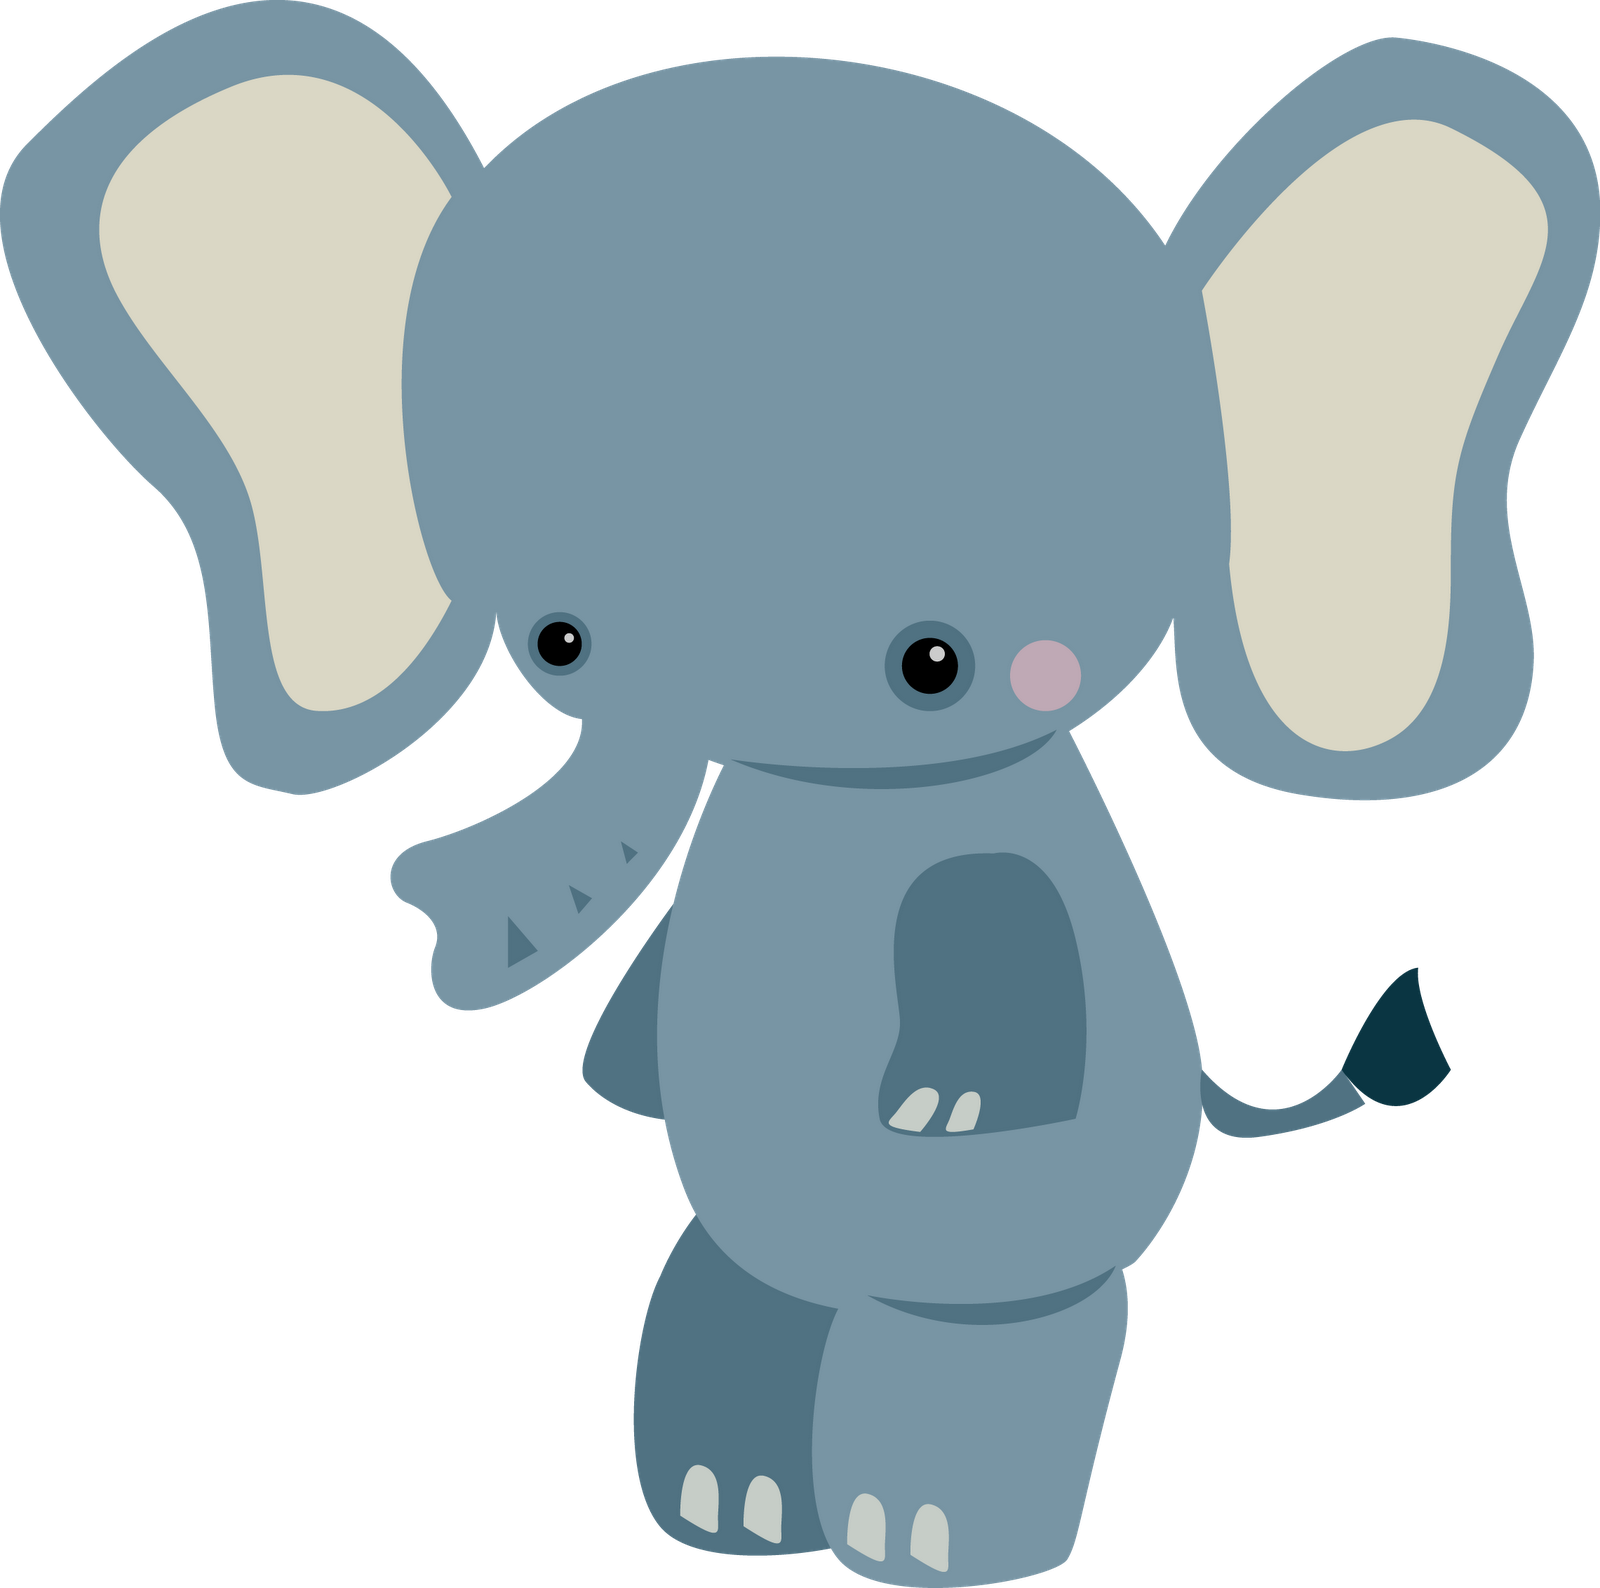 Baby animal png. Cute clipart at getdrawings